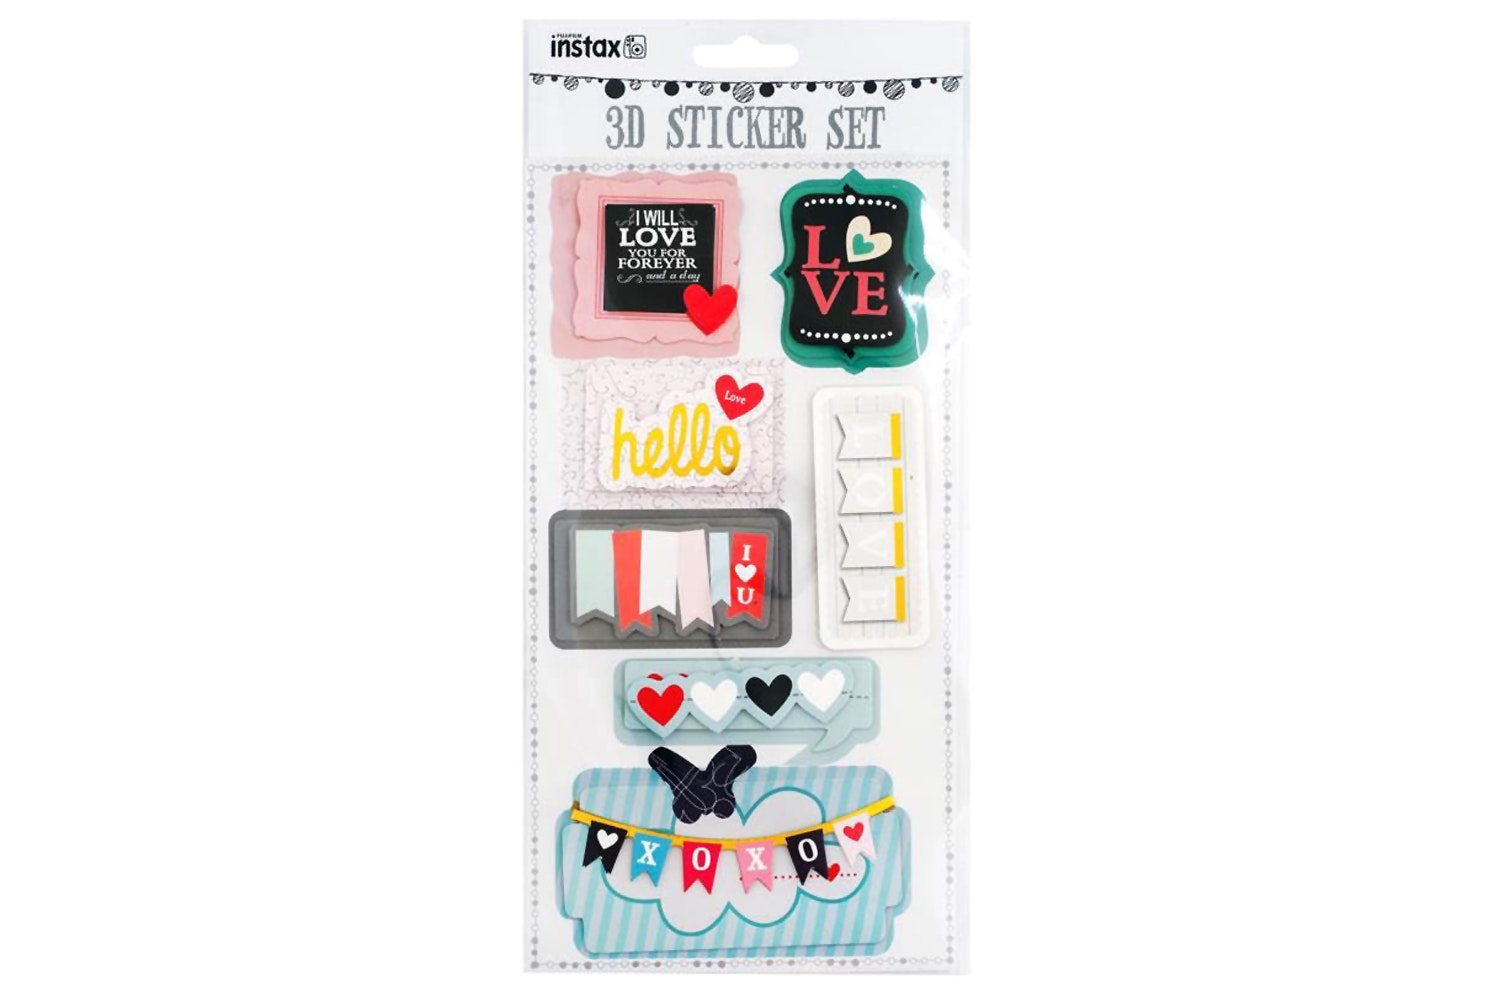 Fujifilm Instax Sticker Sheet | Hearts